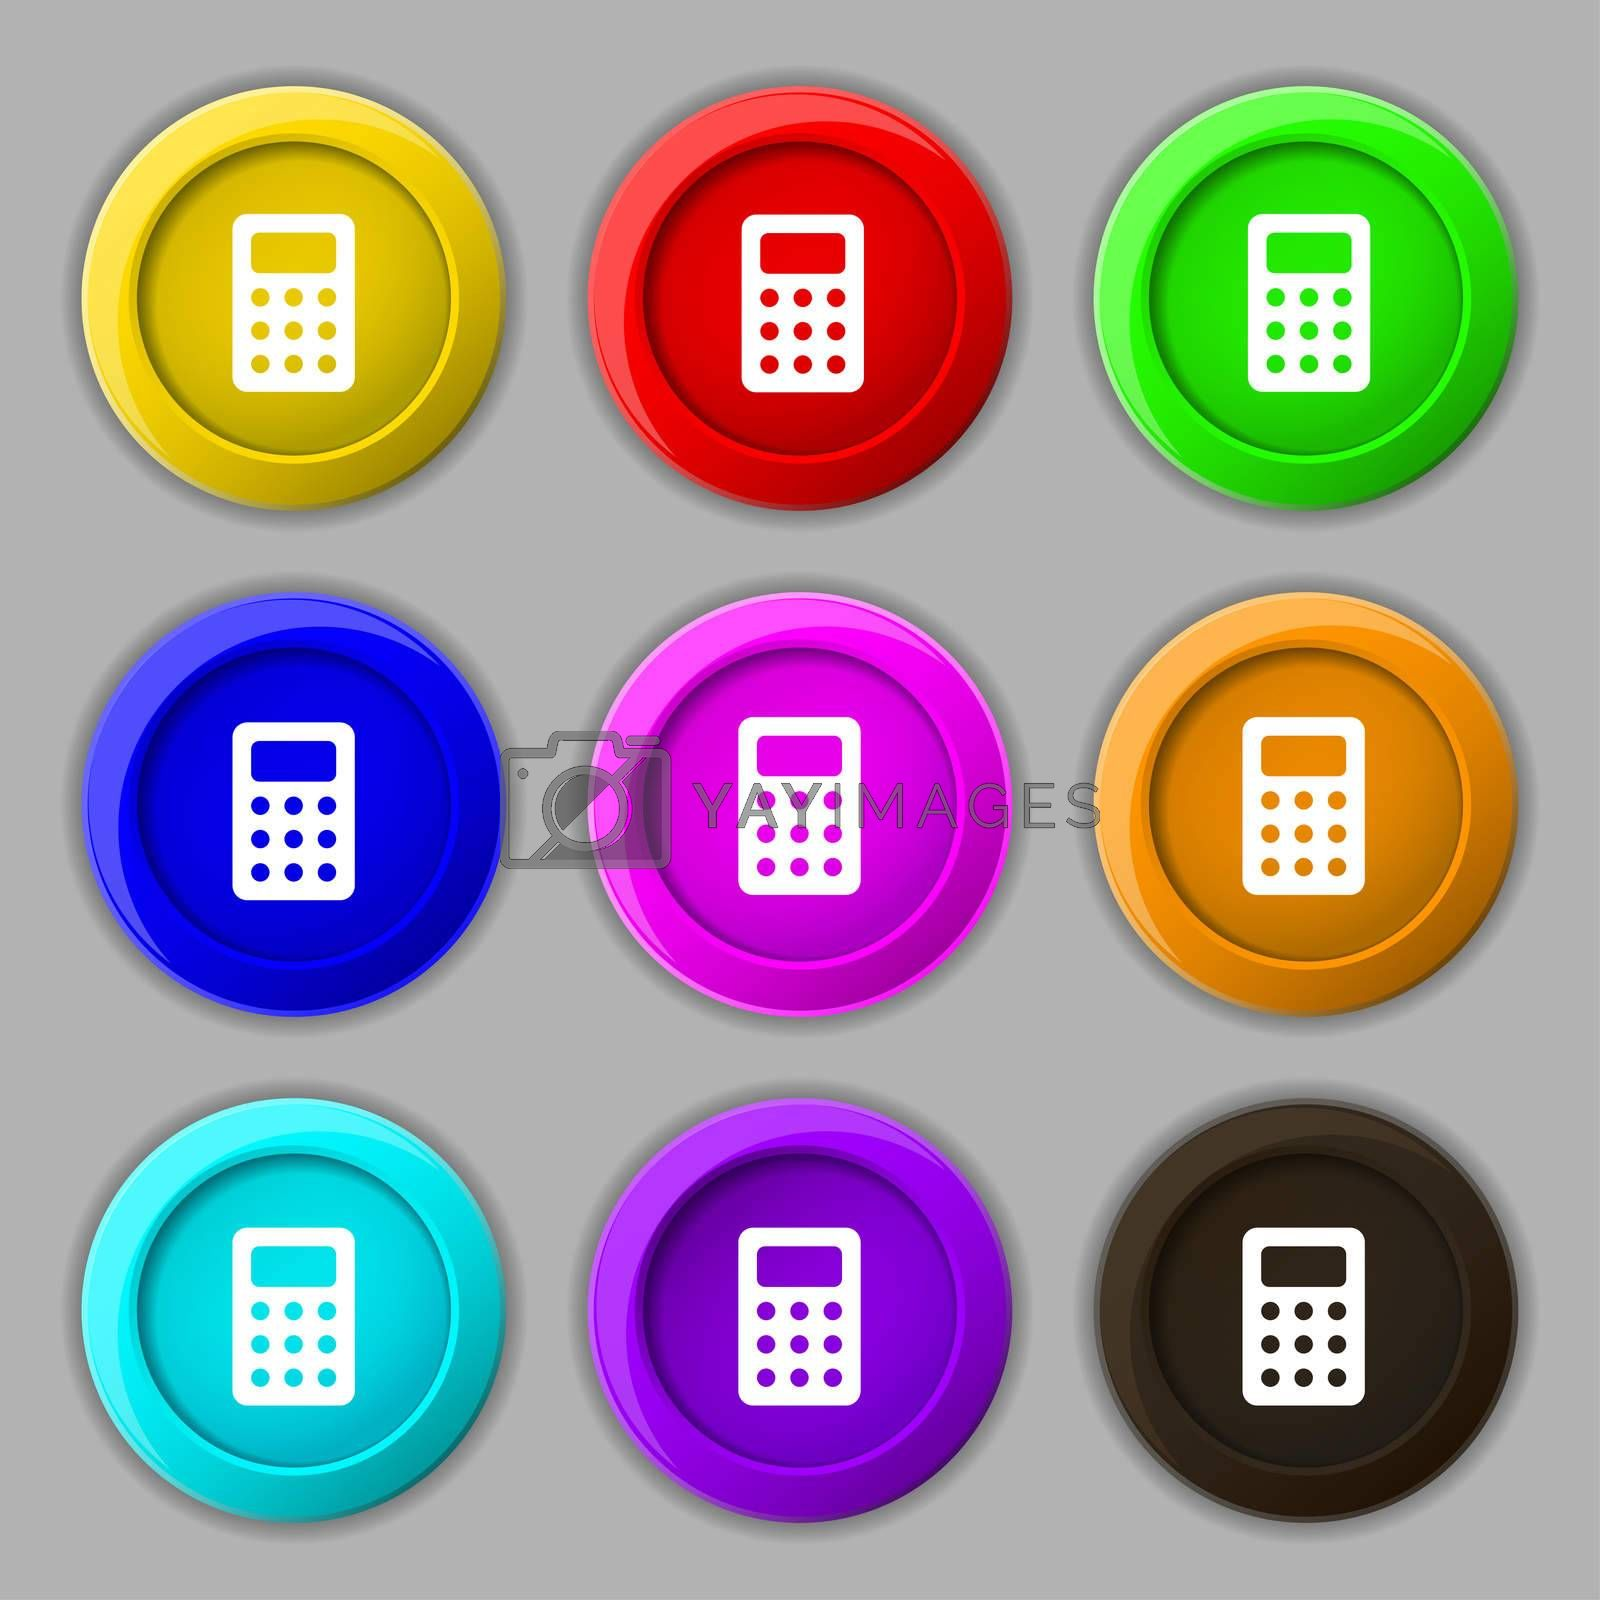 Calculator, Bookkeeping icon sign. symbol on nine round colourful buttons.  by Serhii Lohvyniuk